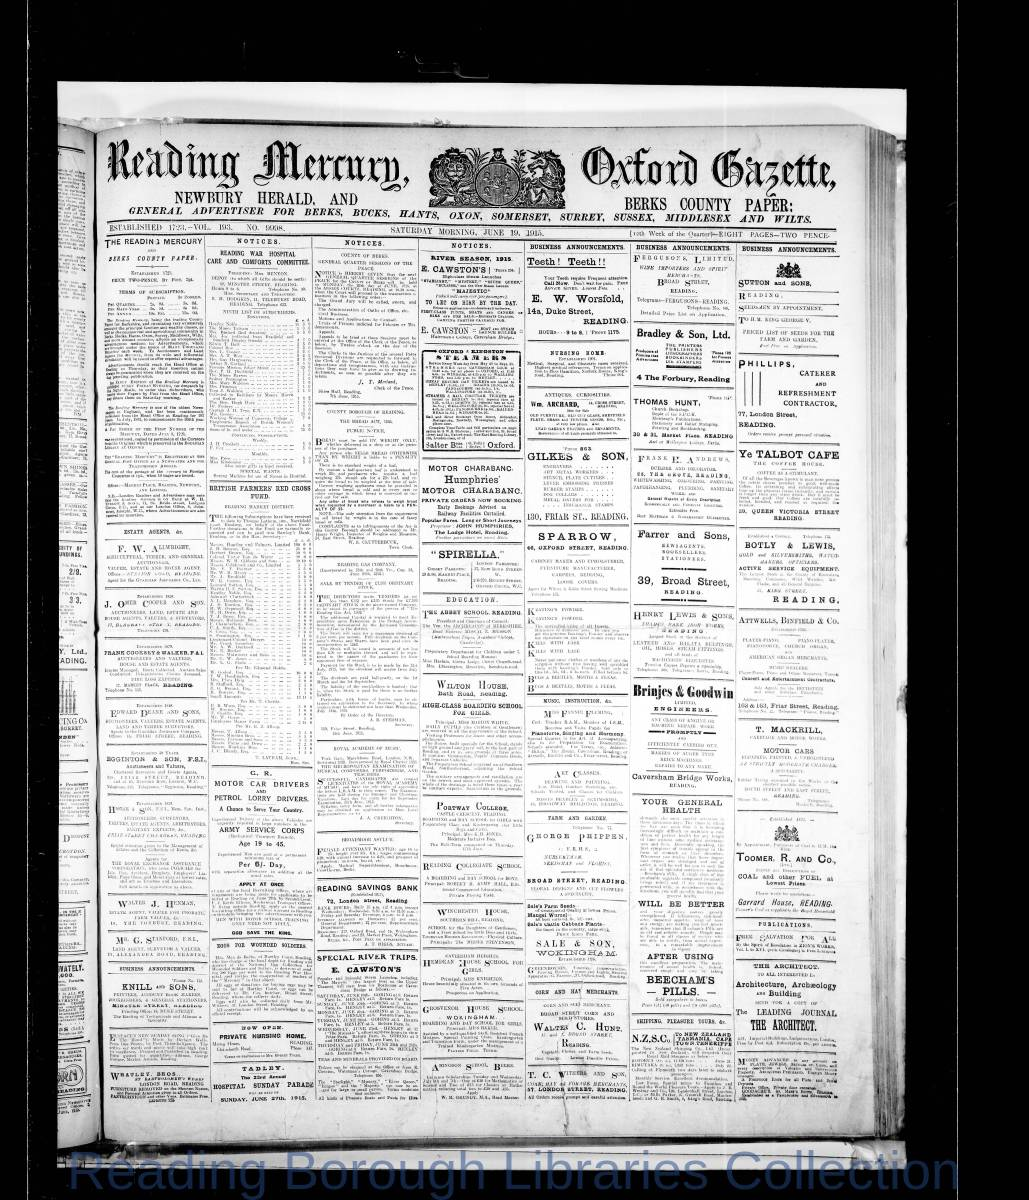 Reading Mercury Oxford Gazette Saturday June 17, 1915. Pg 1